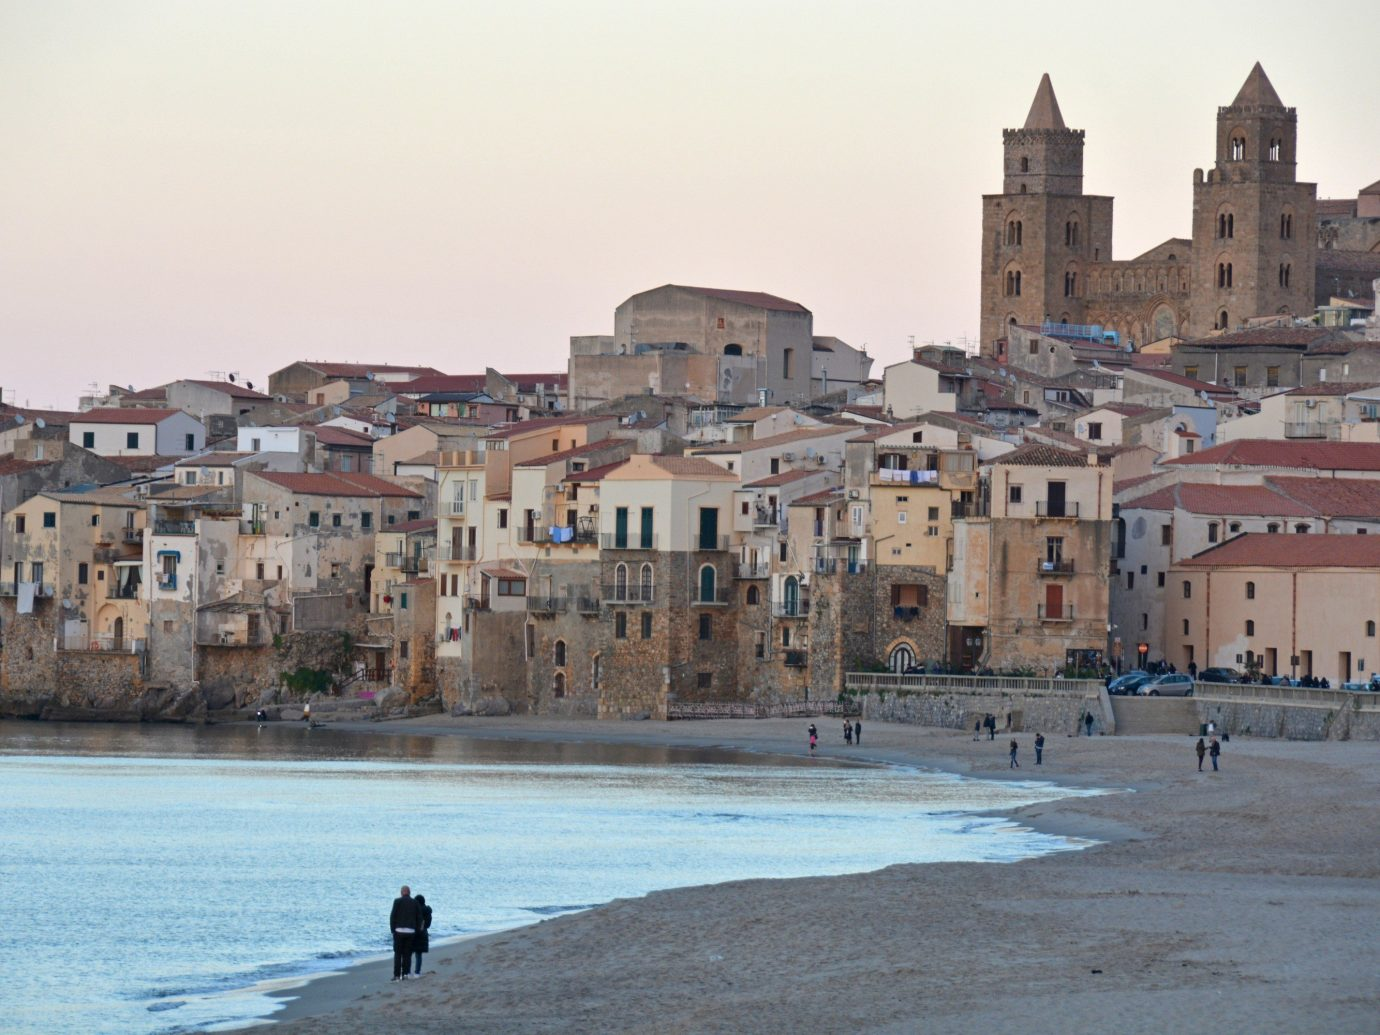 europe Italy Off-the-beaten Path Trip Ideas outdoor Town City Sea cityscape Coast human settlement vacation skyline Beach town square shore square